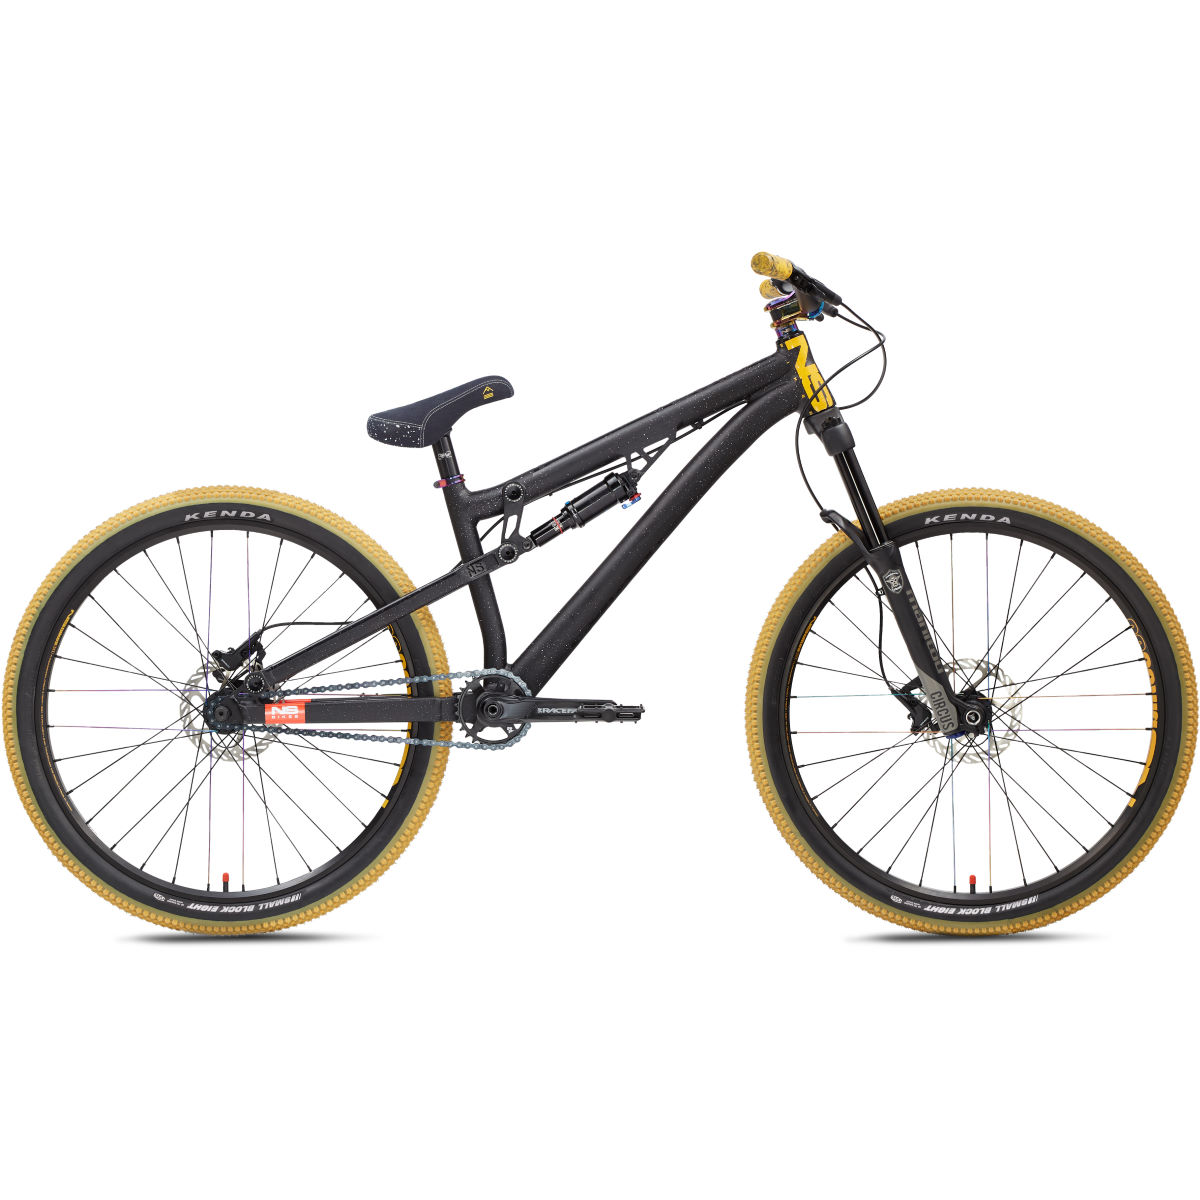 NS Bikes Soda Slope Dirt Jump Bike   Full Suspension Mountain Bikes